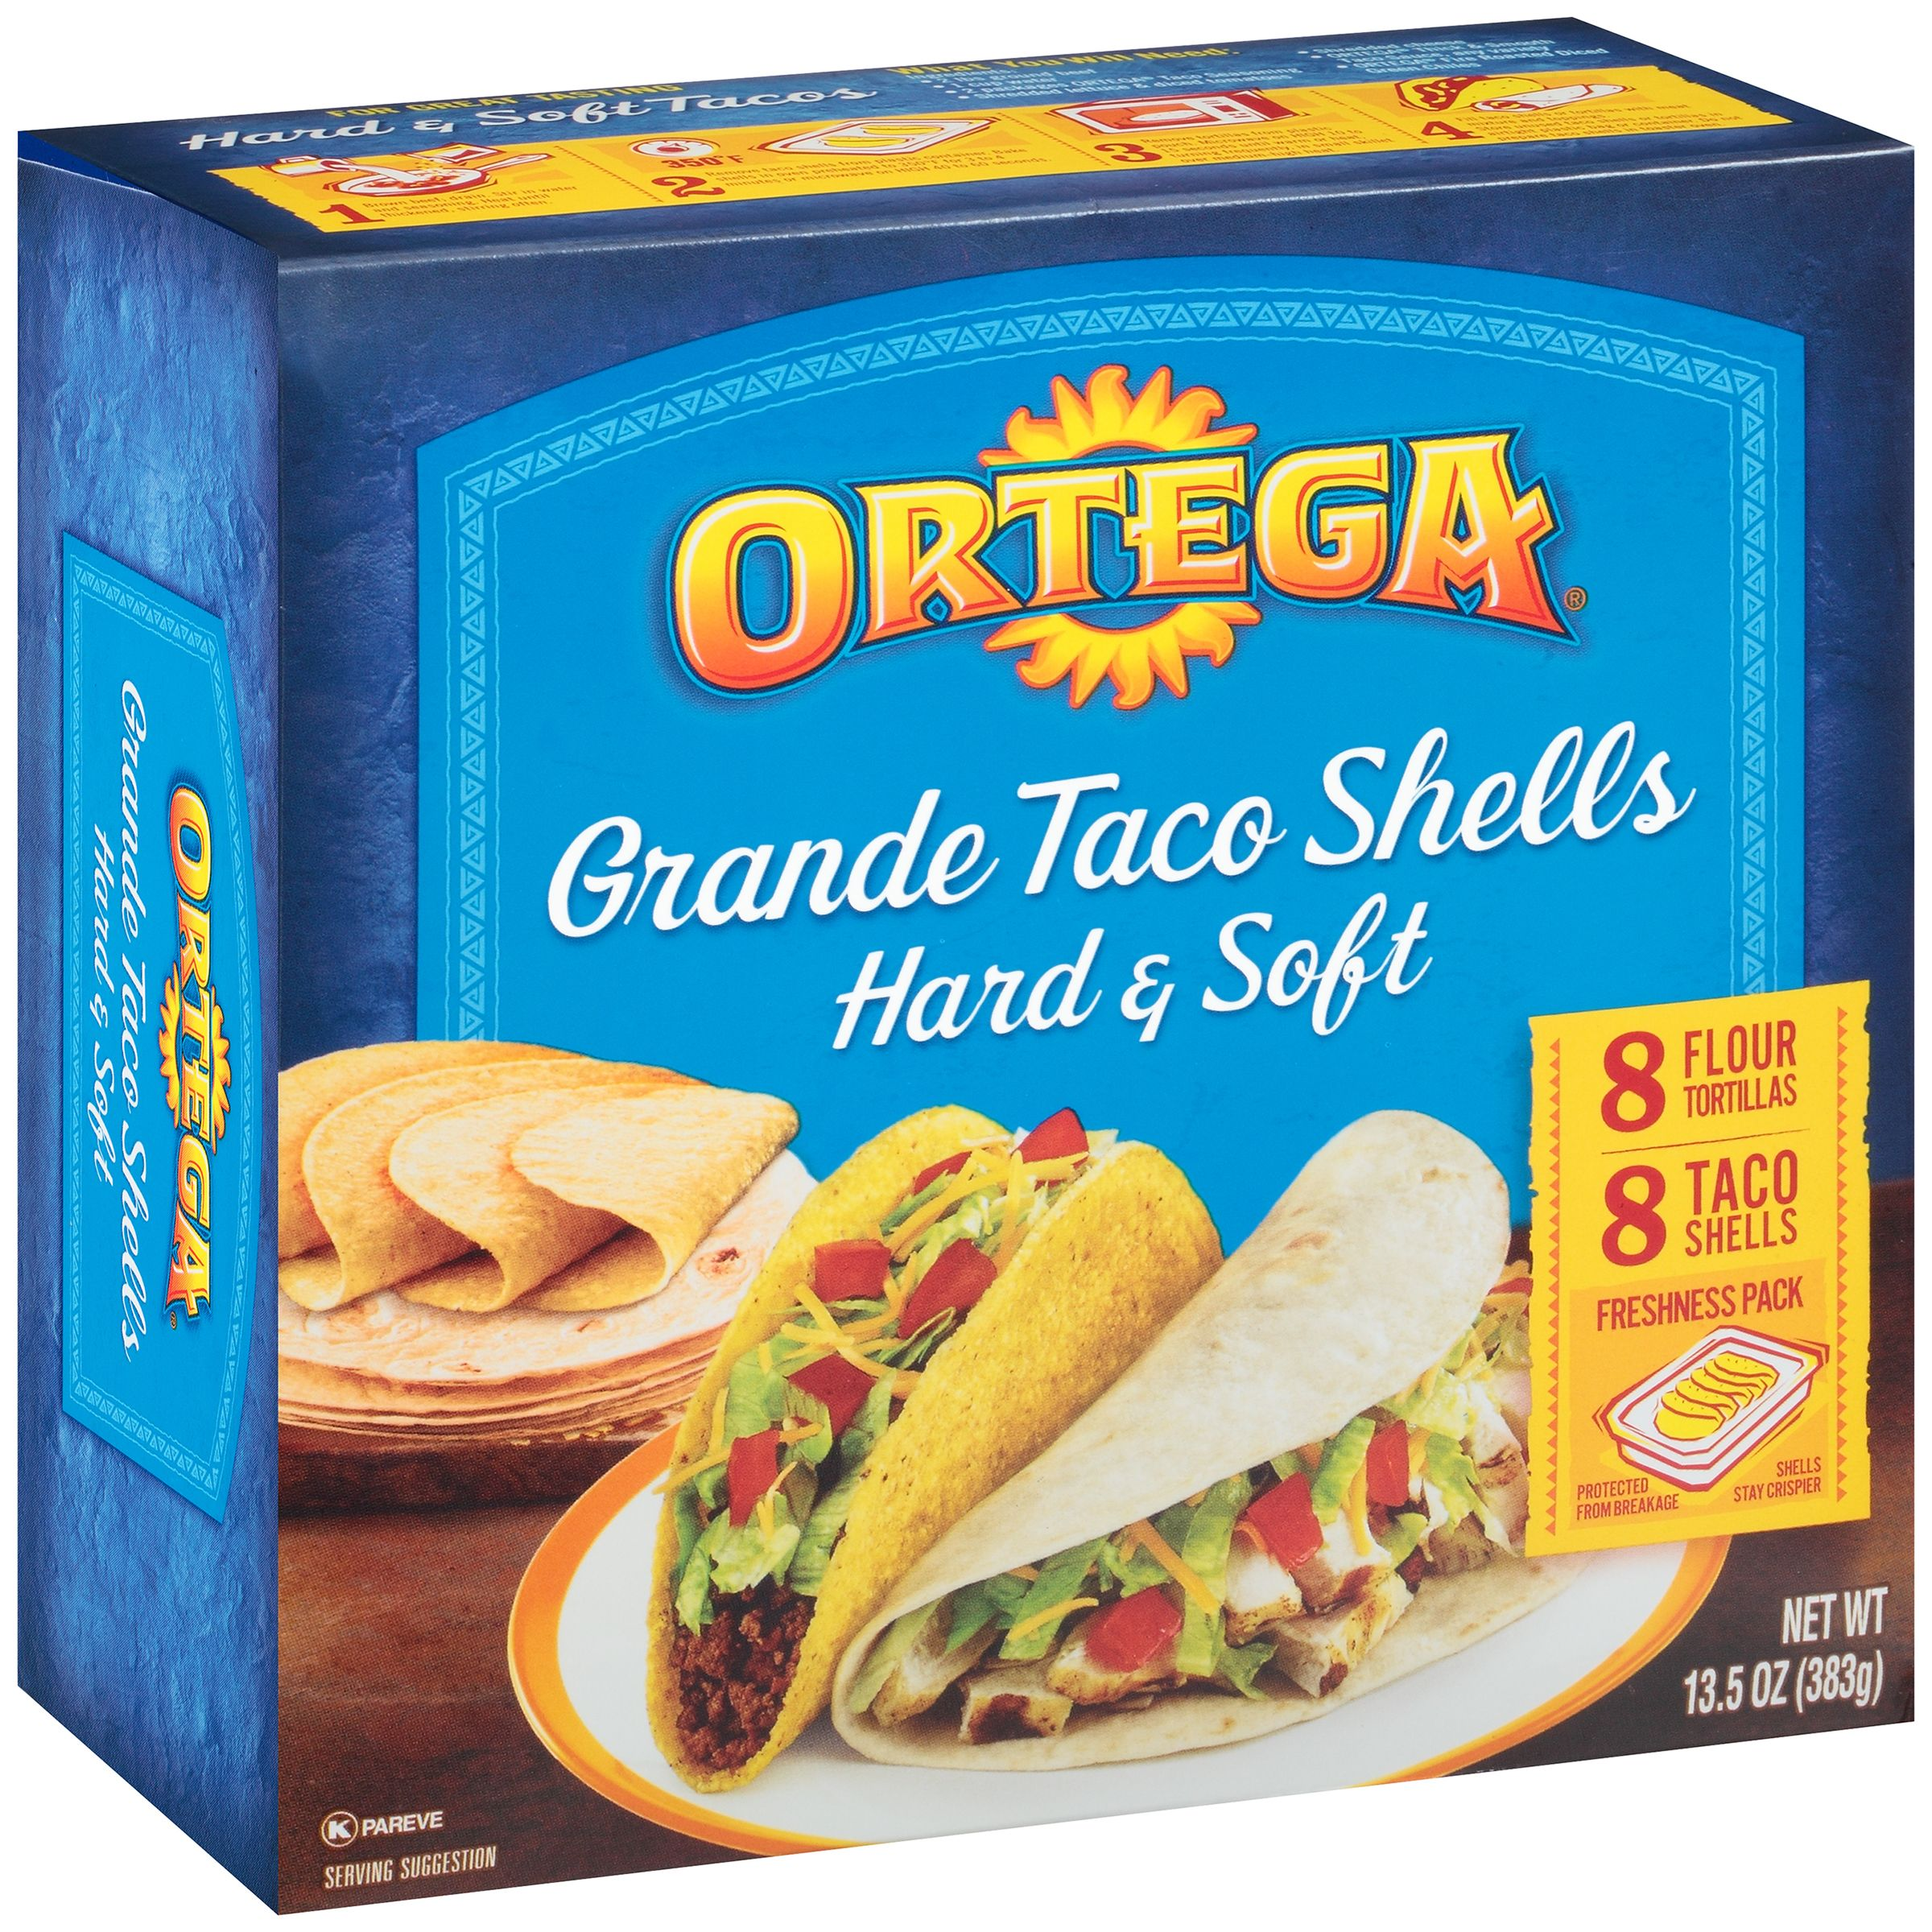 Ortega Grande Taco Shells Hard & Soft - 16 CT